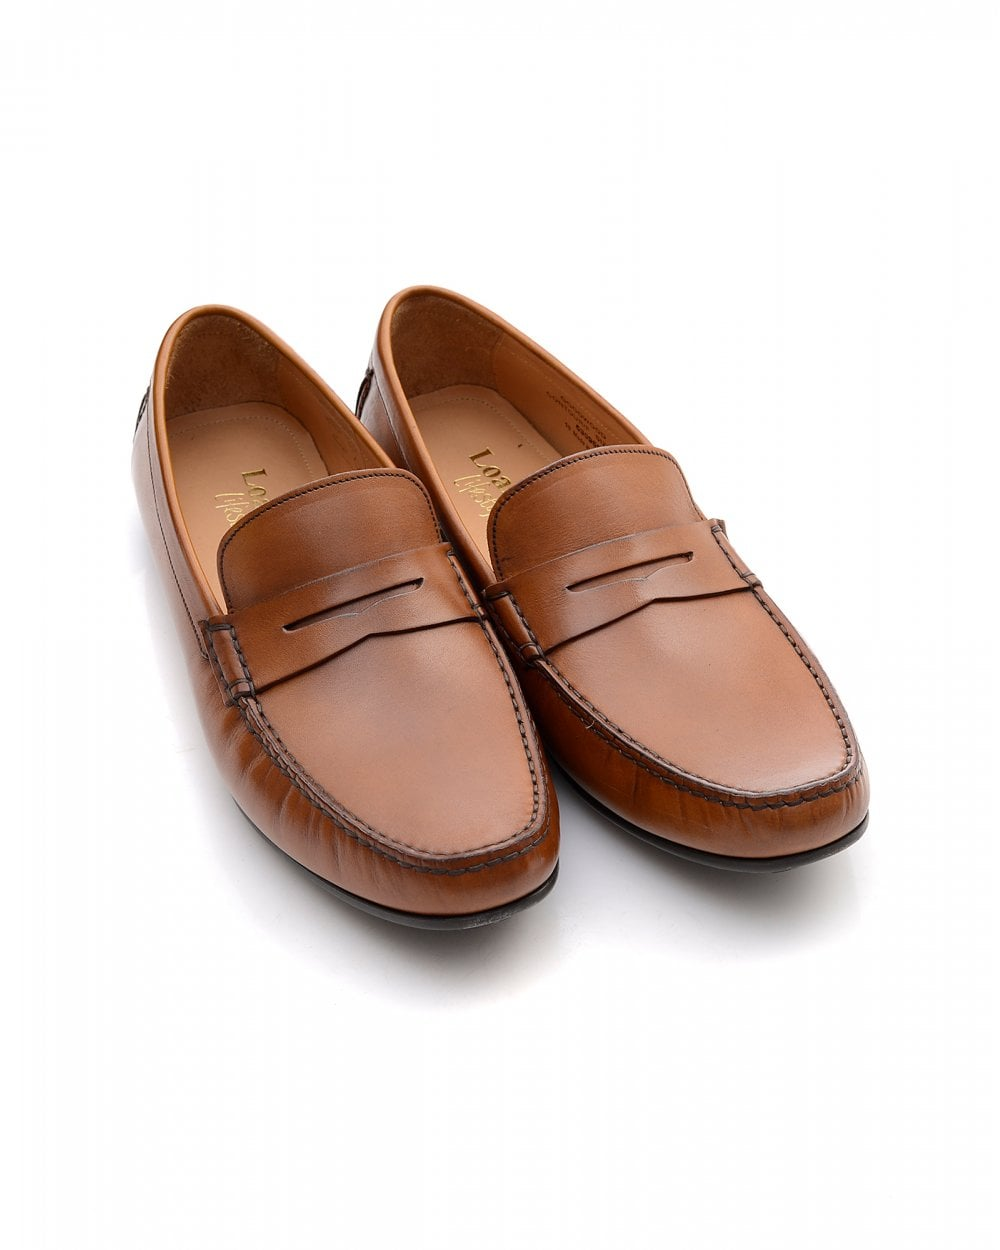 new images of exclusive range cheapest Loake Mens Goodwood Shoes, Tan Brown Leather Penny Loafers